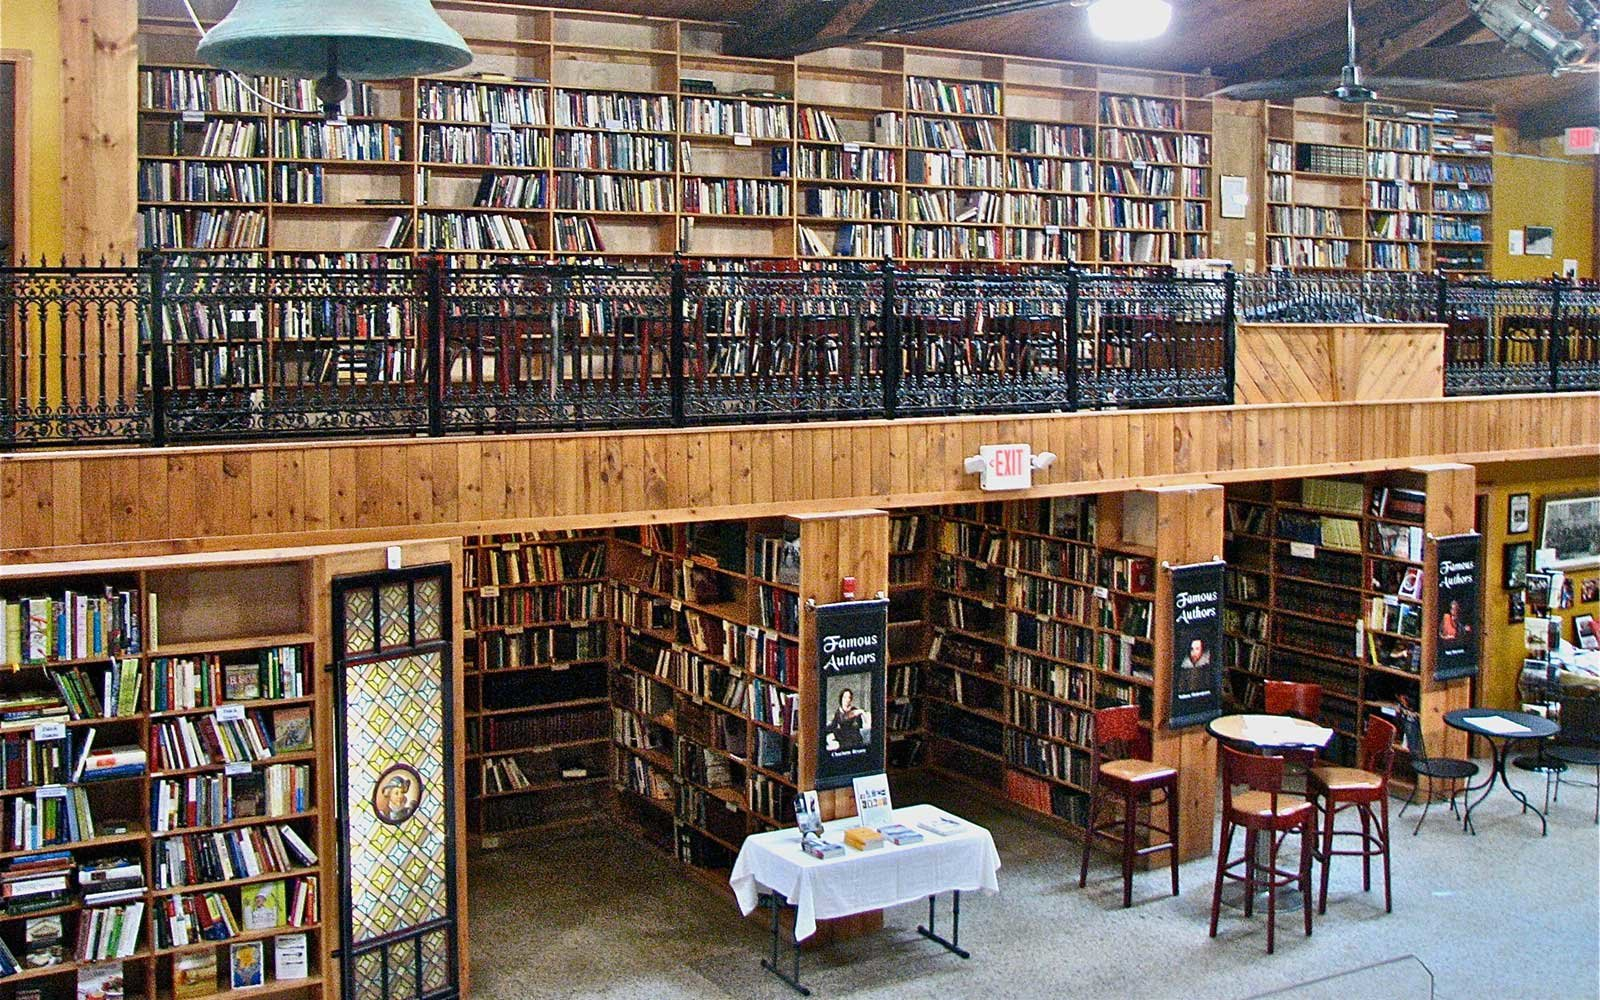 The Midtown Scholar Bookstore, Harrisburg, Pennsylvania